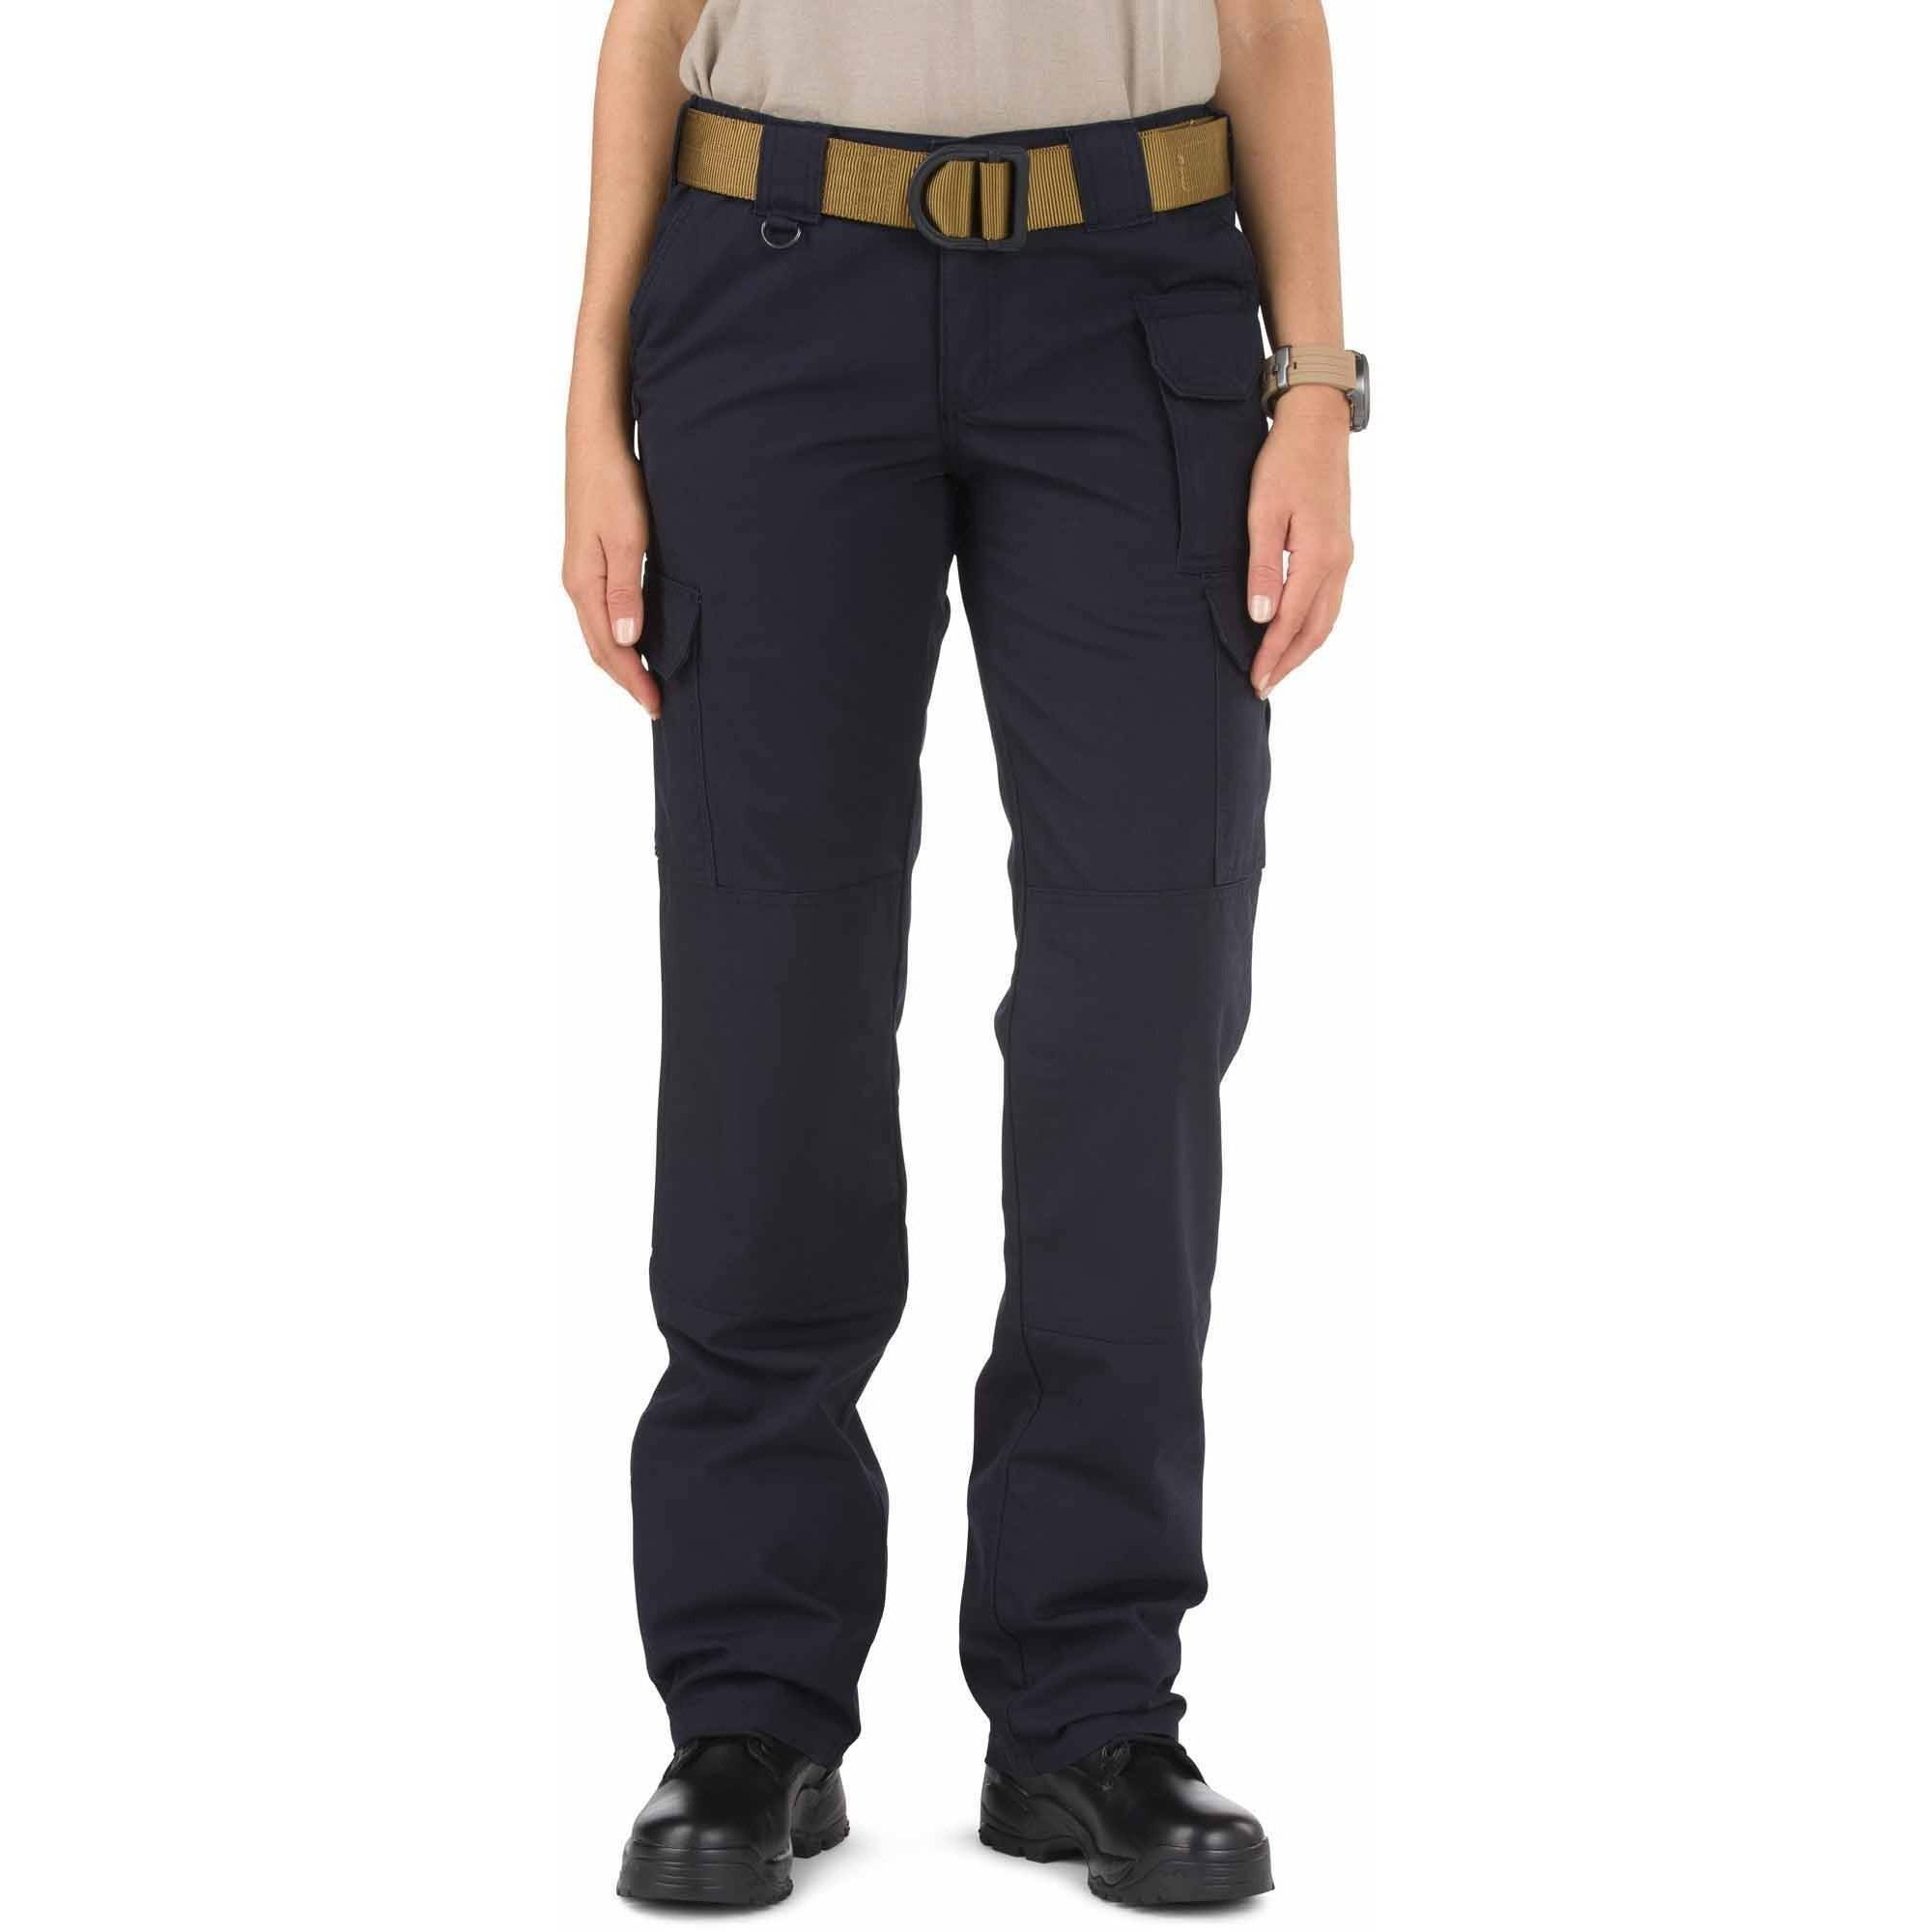 5.11 Tactical Women's New Fit Tactical Pant, Fire Navy